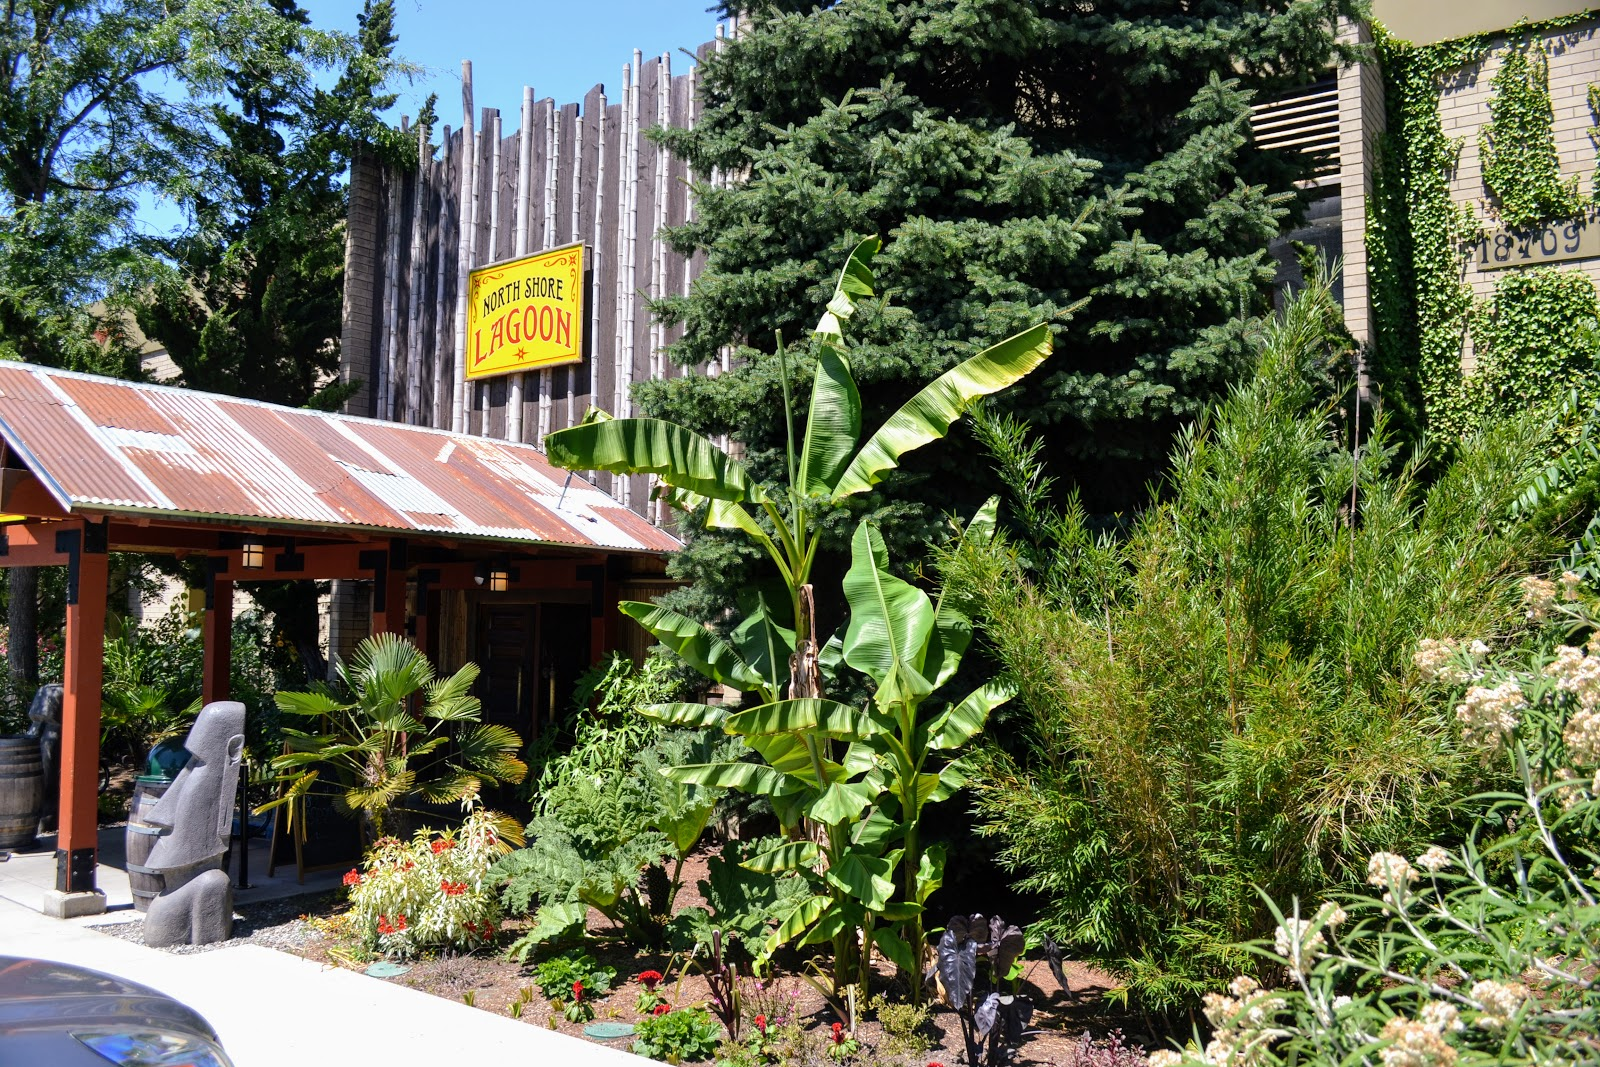 The Outlaw Gardener: McMenamins - Gardens at the Anderson School